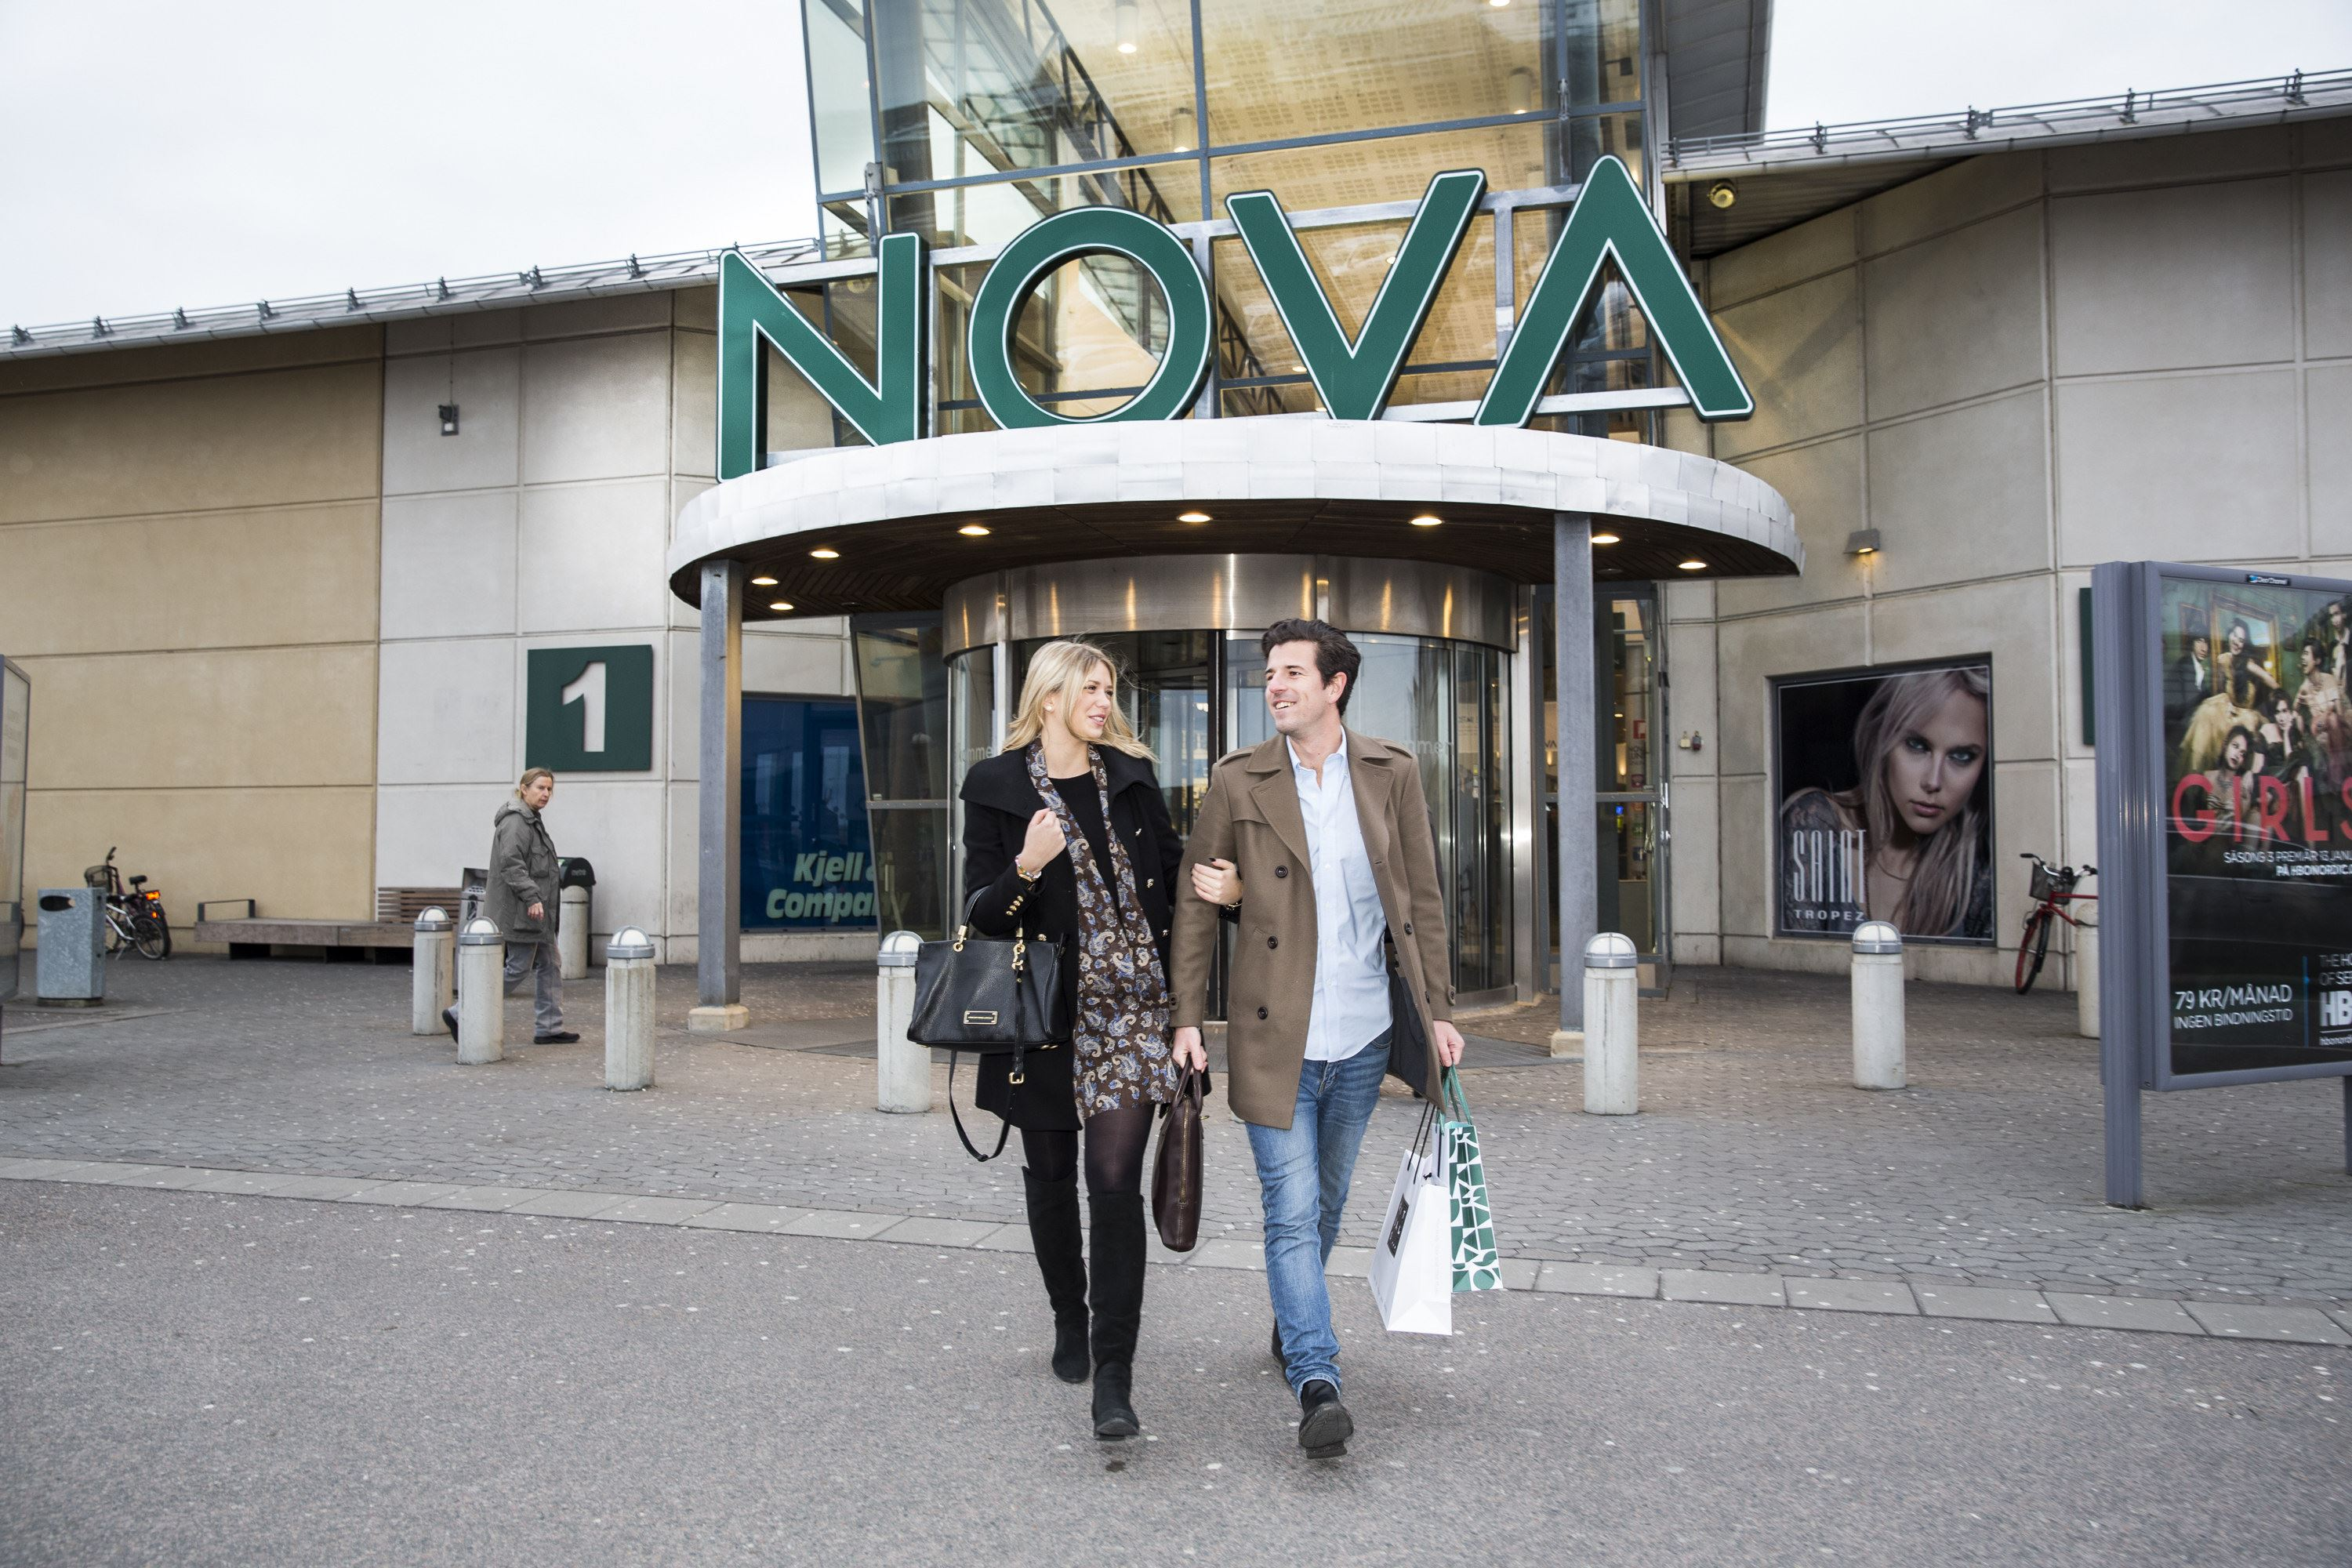 © Nova Lund, Nova Lund shoppingcenter